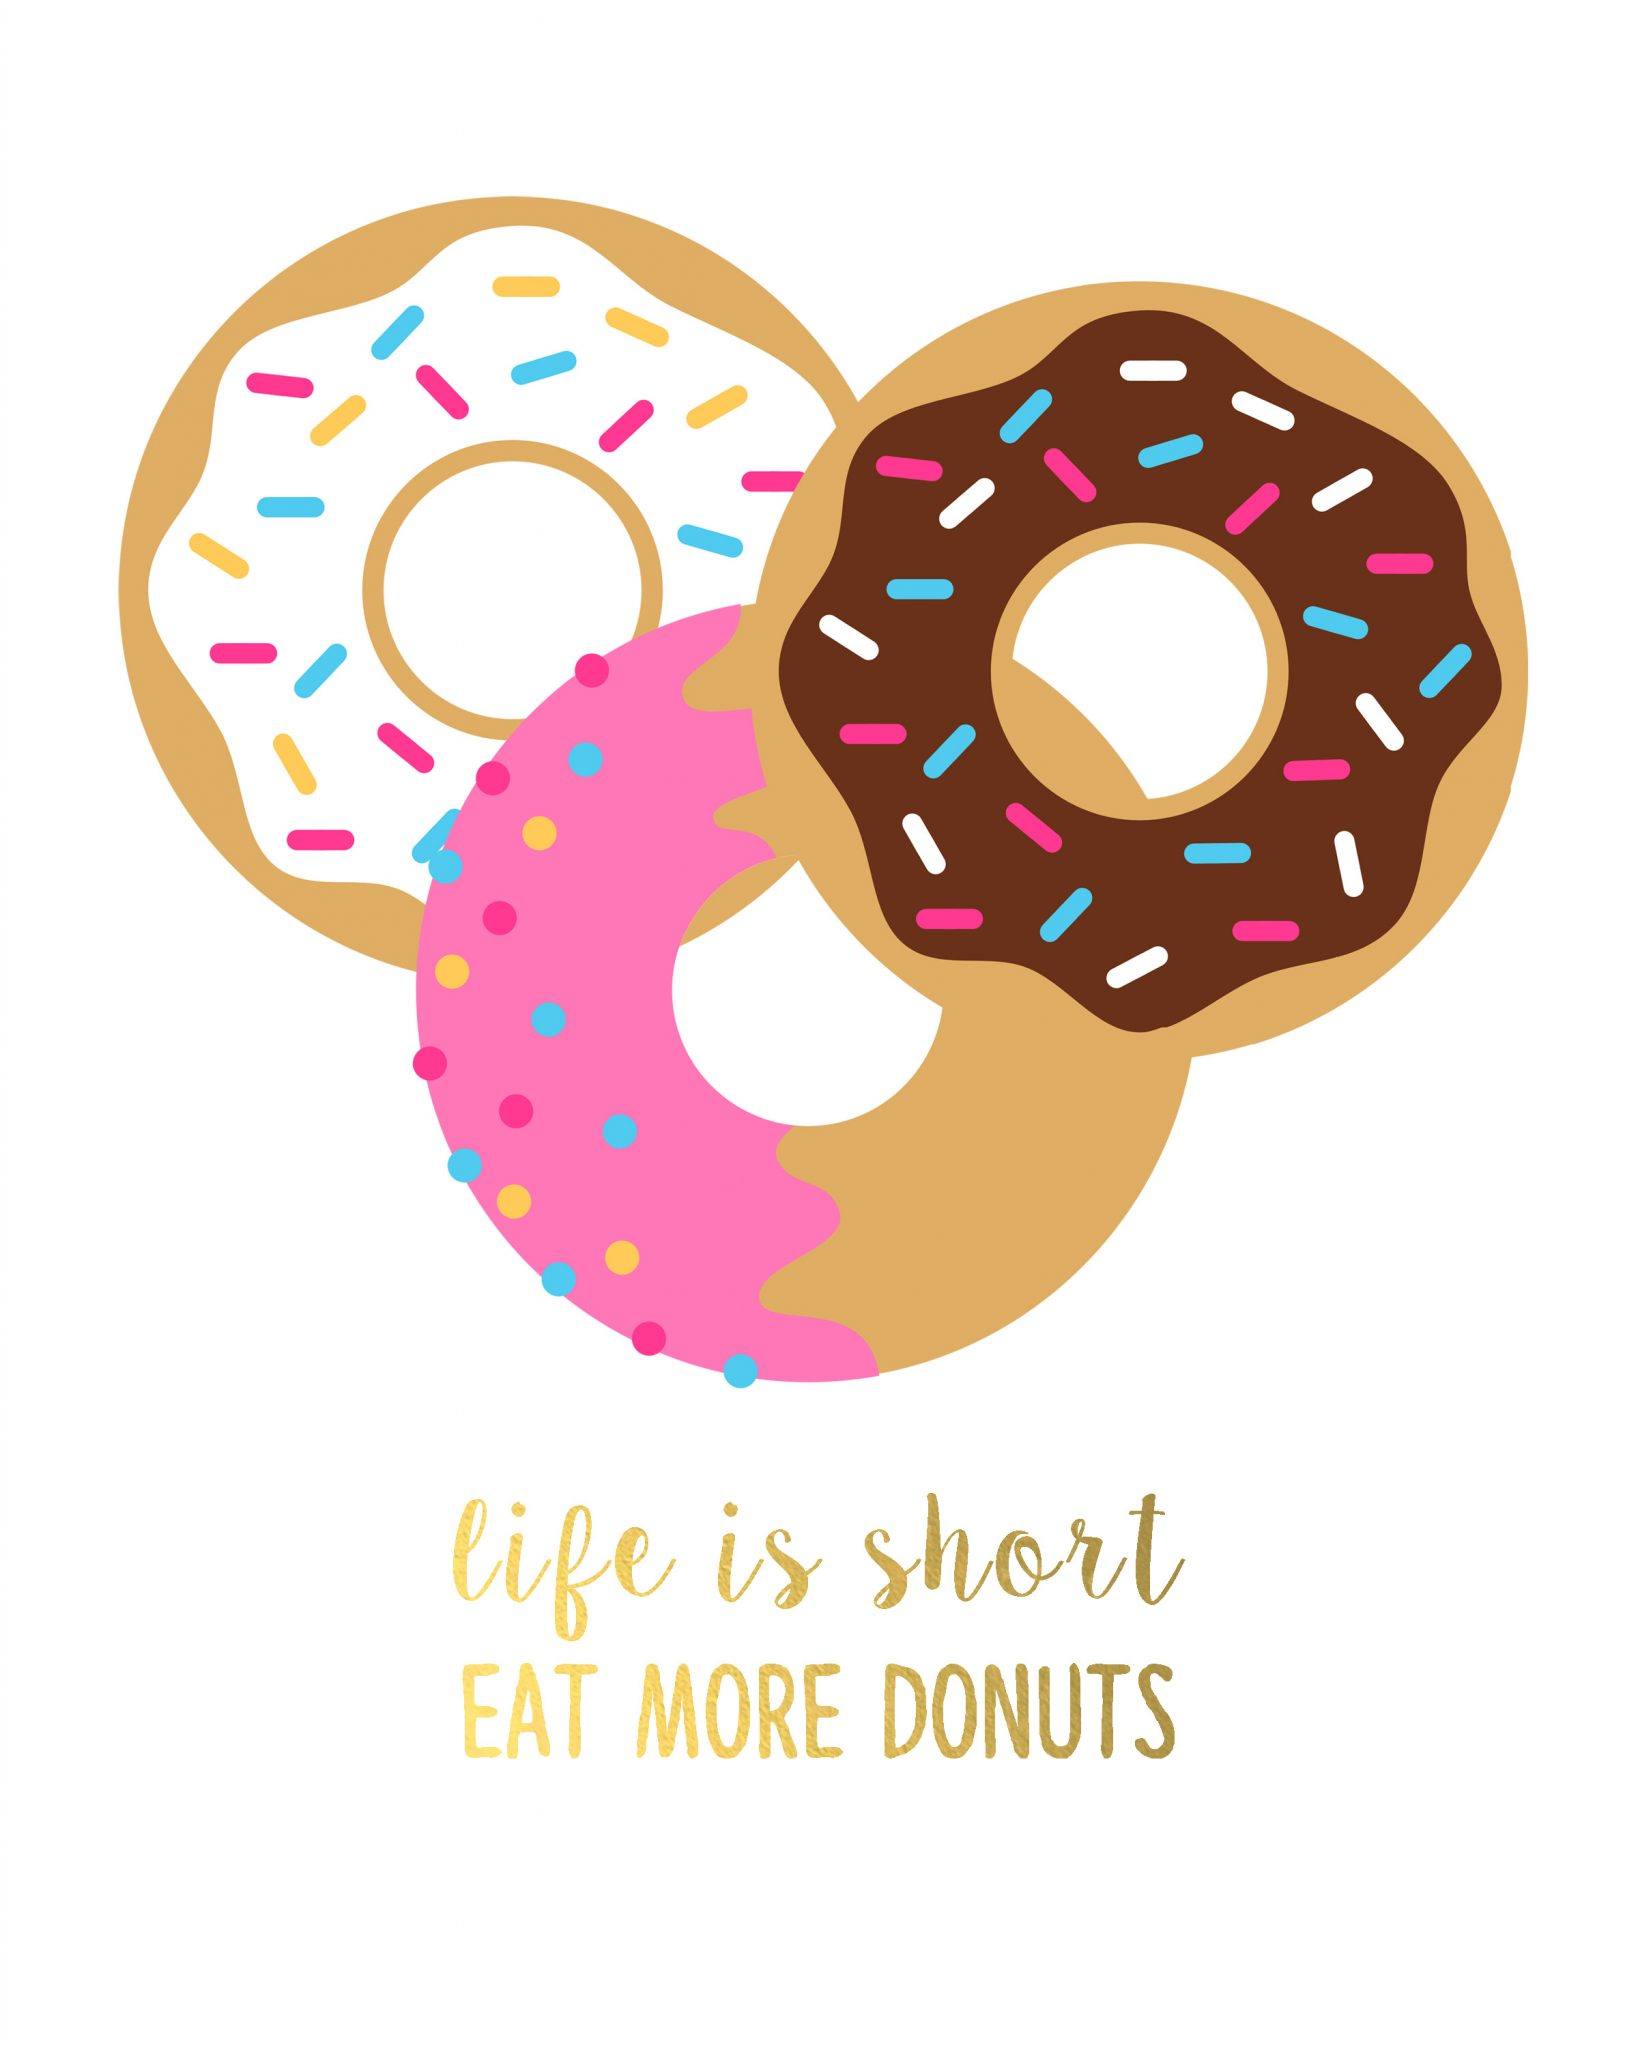 photo relating to Donut Printable titled Cost-free Printable Artwork (with Donuts!) - The Region Stylish Cottage